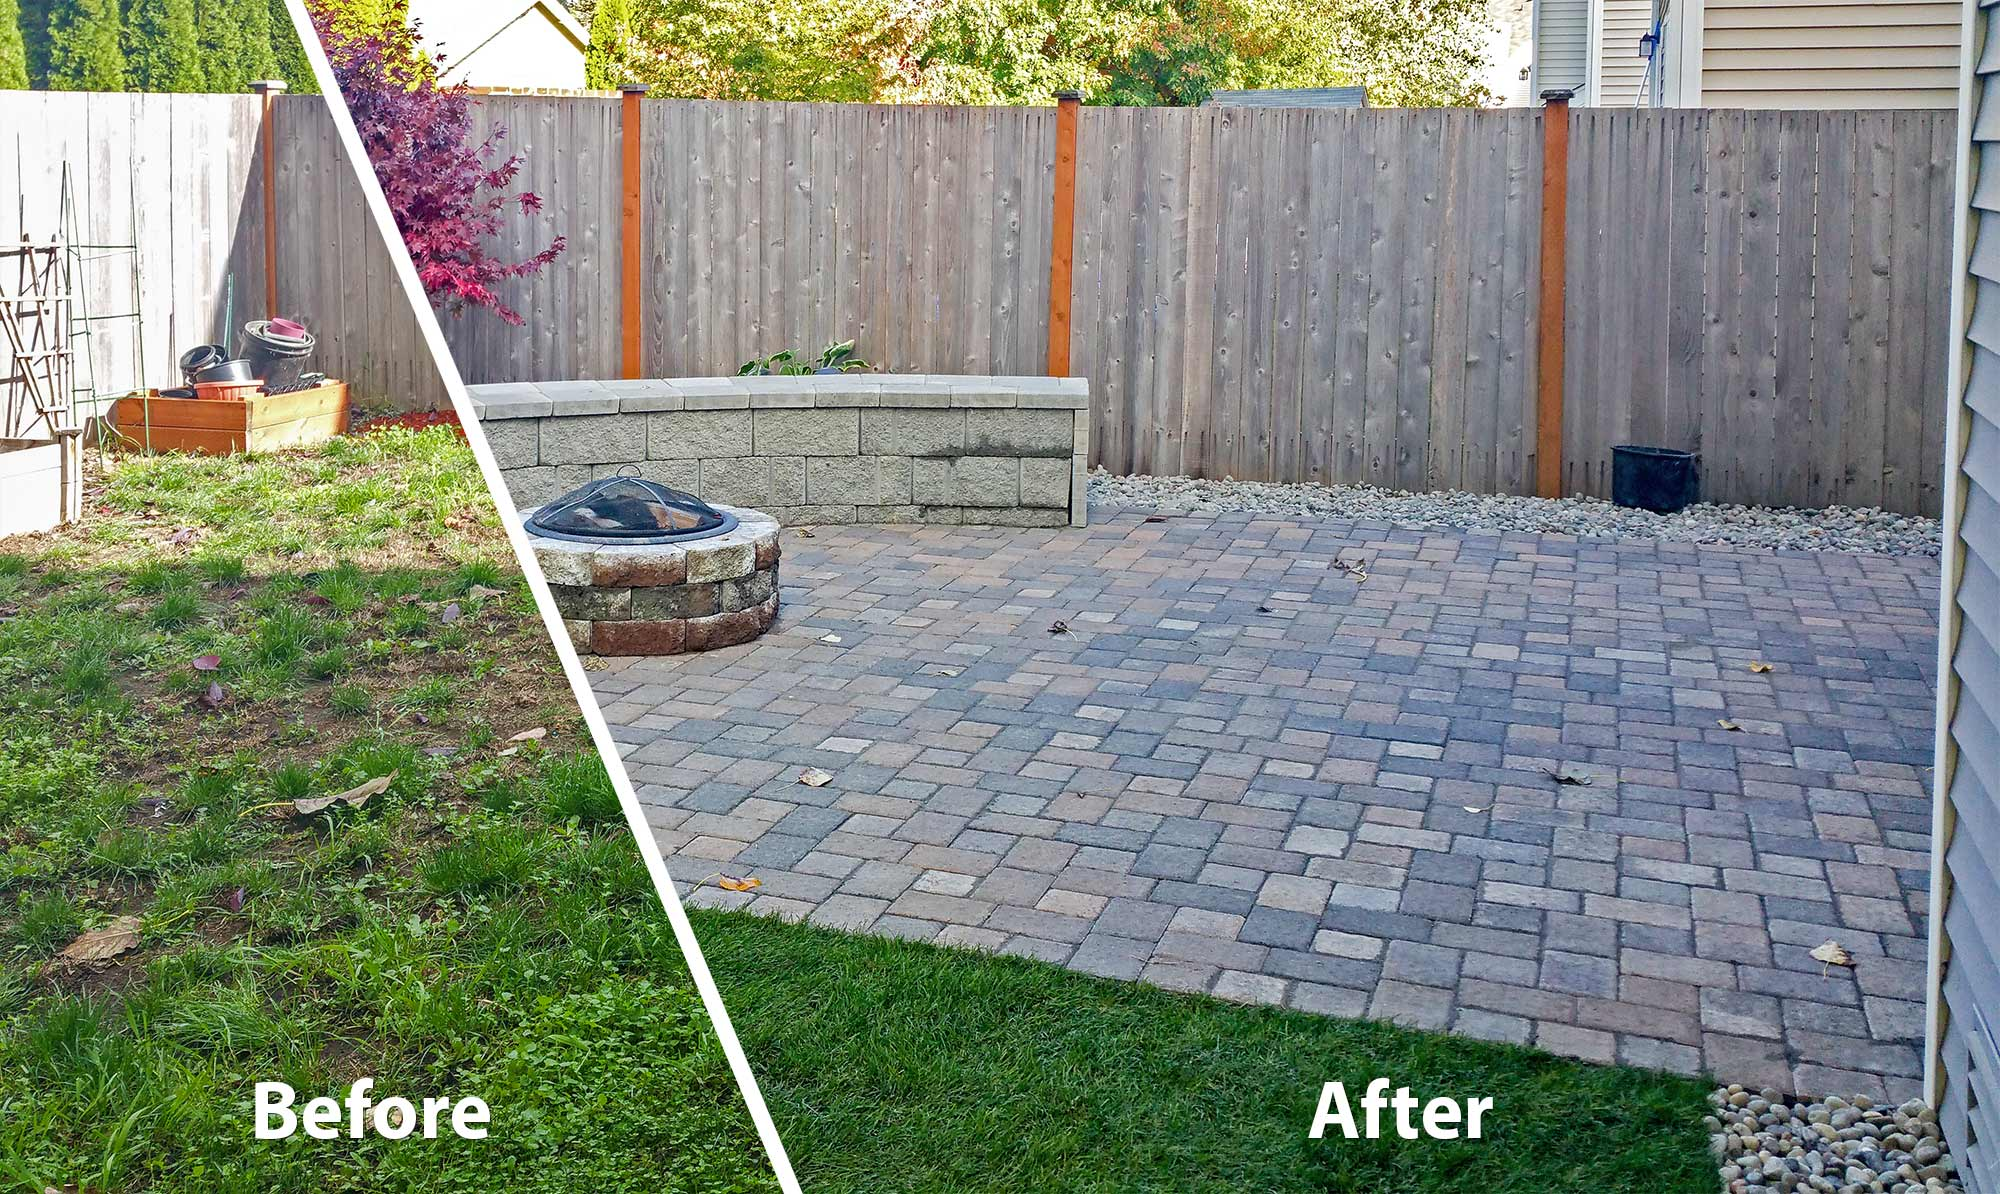 AJB Landscaping & Fence removed the old, neglected lawn from this Tumwater backyard and replaced with a paver patio and fresh sod.